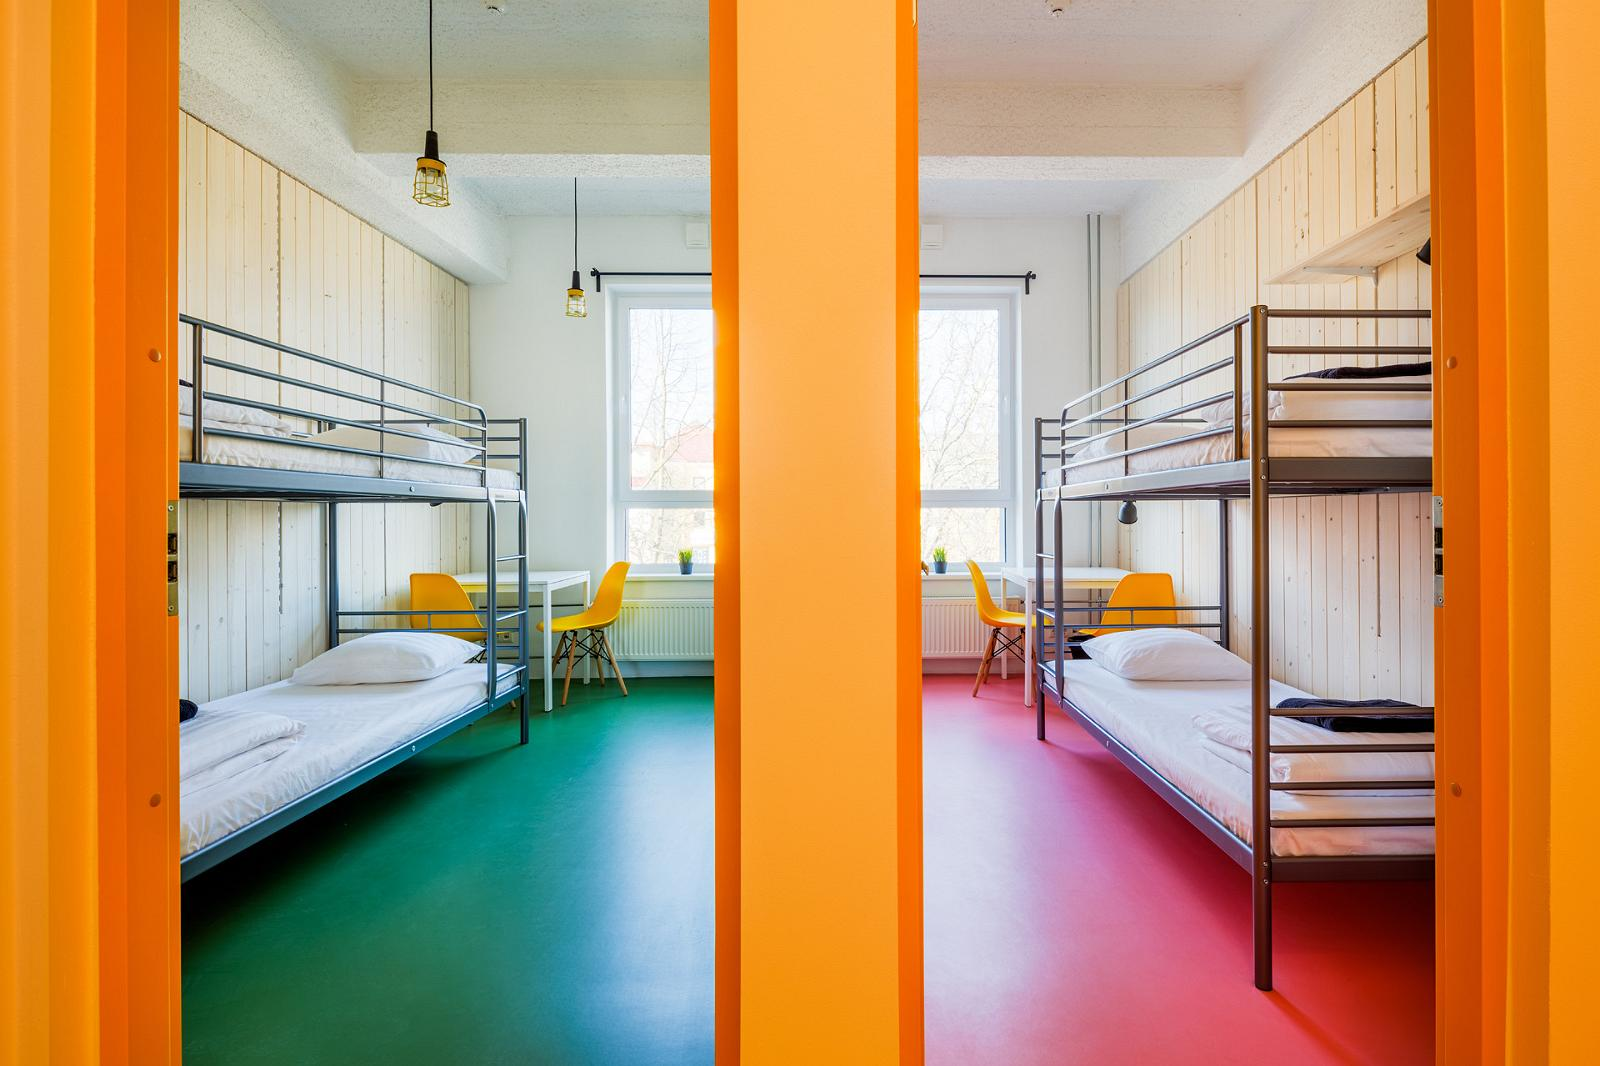 Tartu hostel i hektor design hostel i estonia - A Two Room Apartment With Bunk Beds